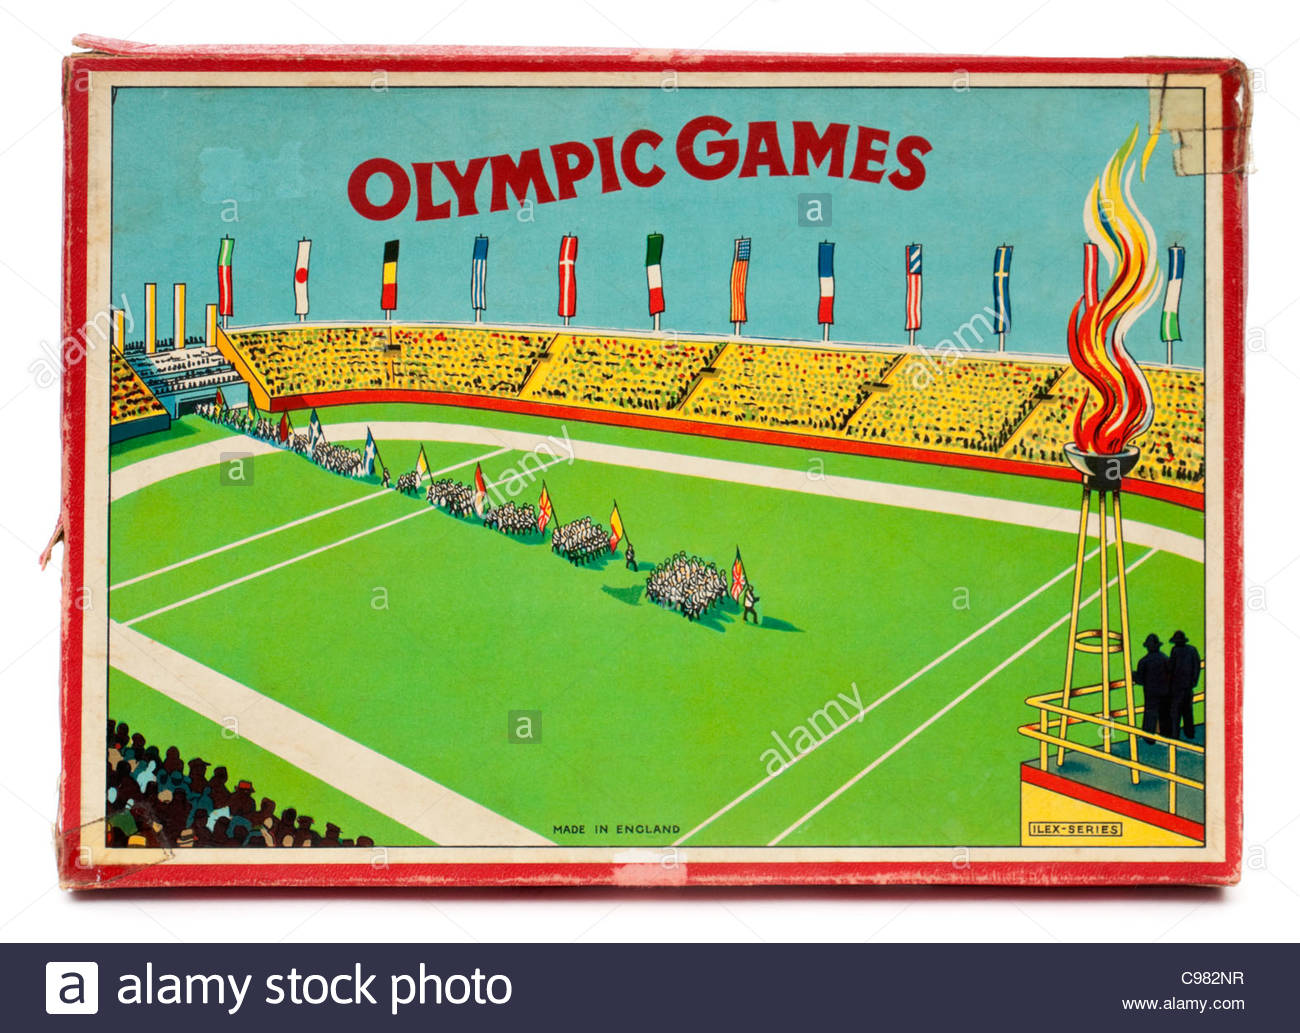 Vintage 1930's 'Olympic Games' board game (Ilex-series) - Stock Image